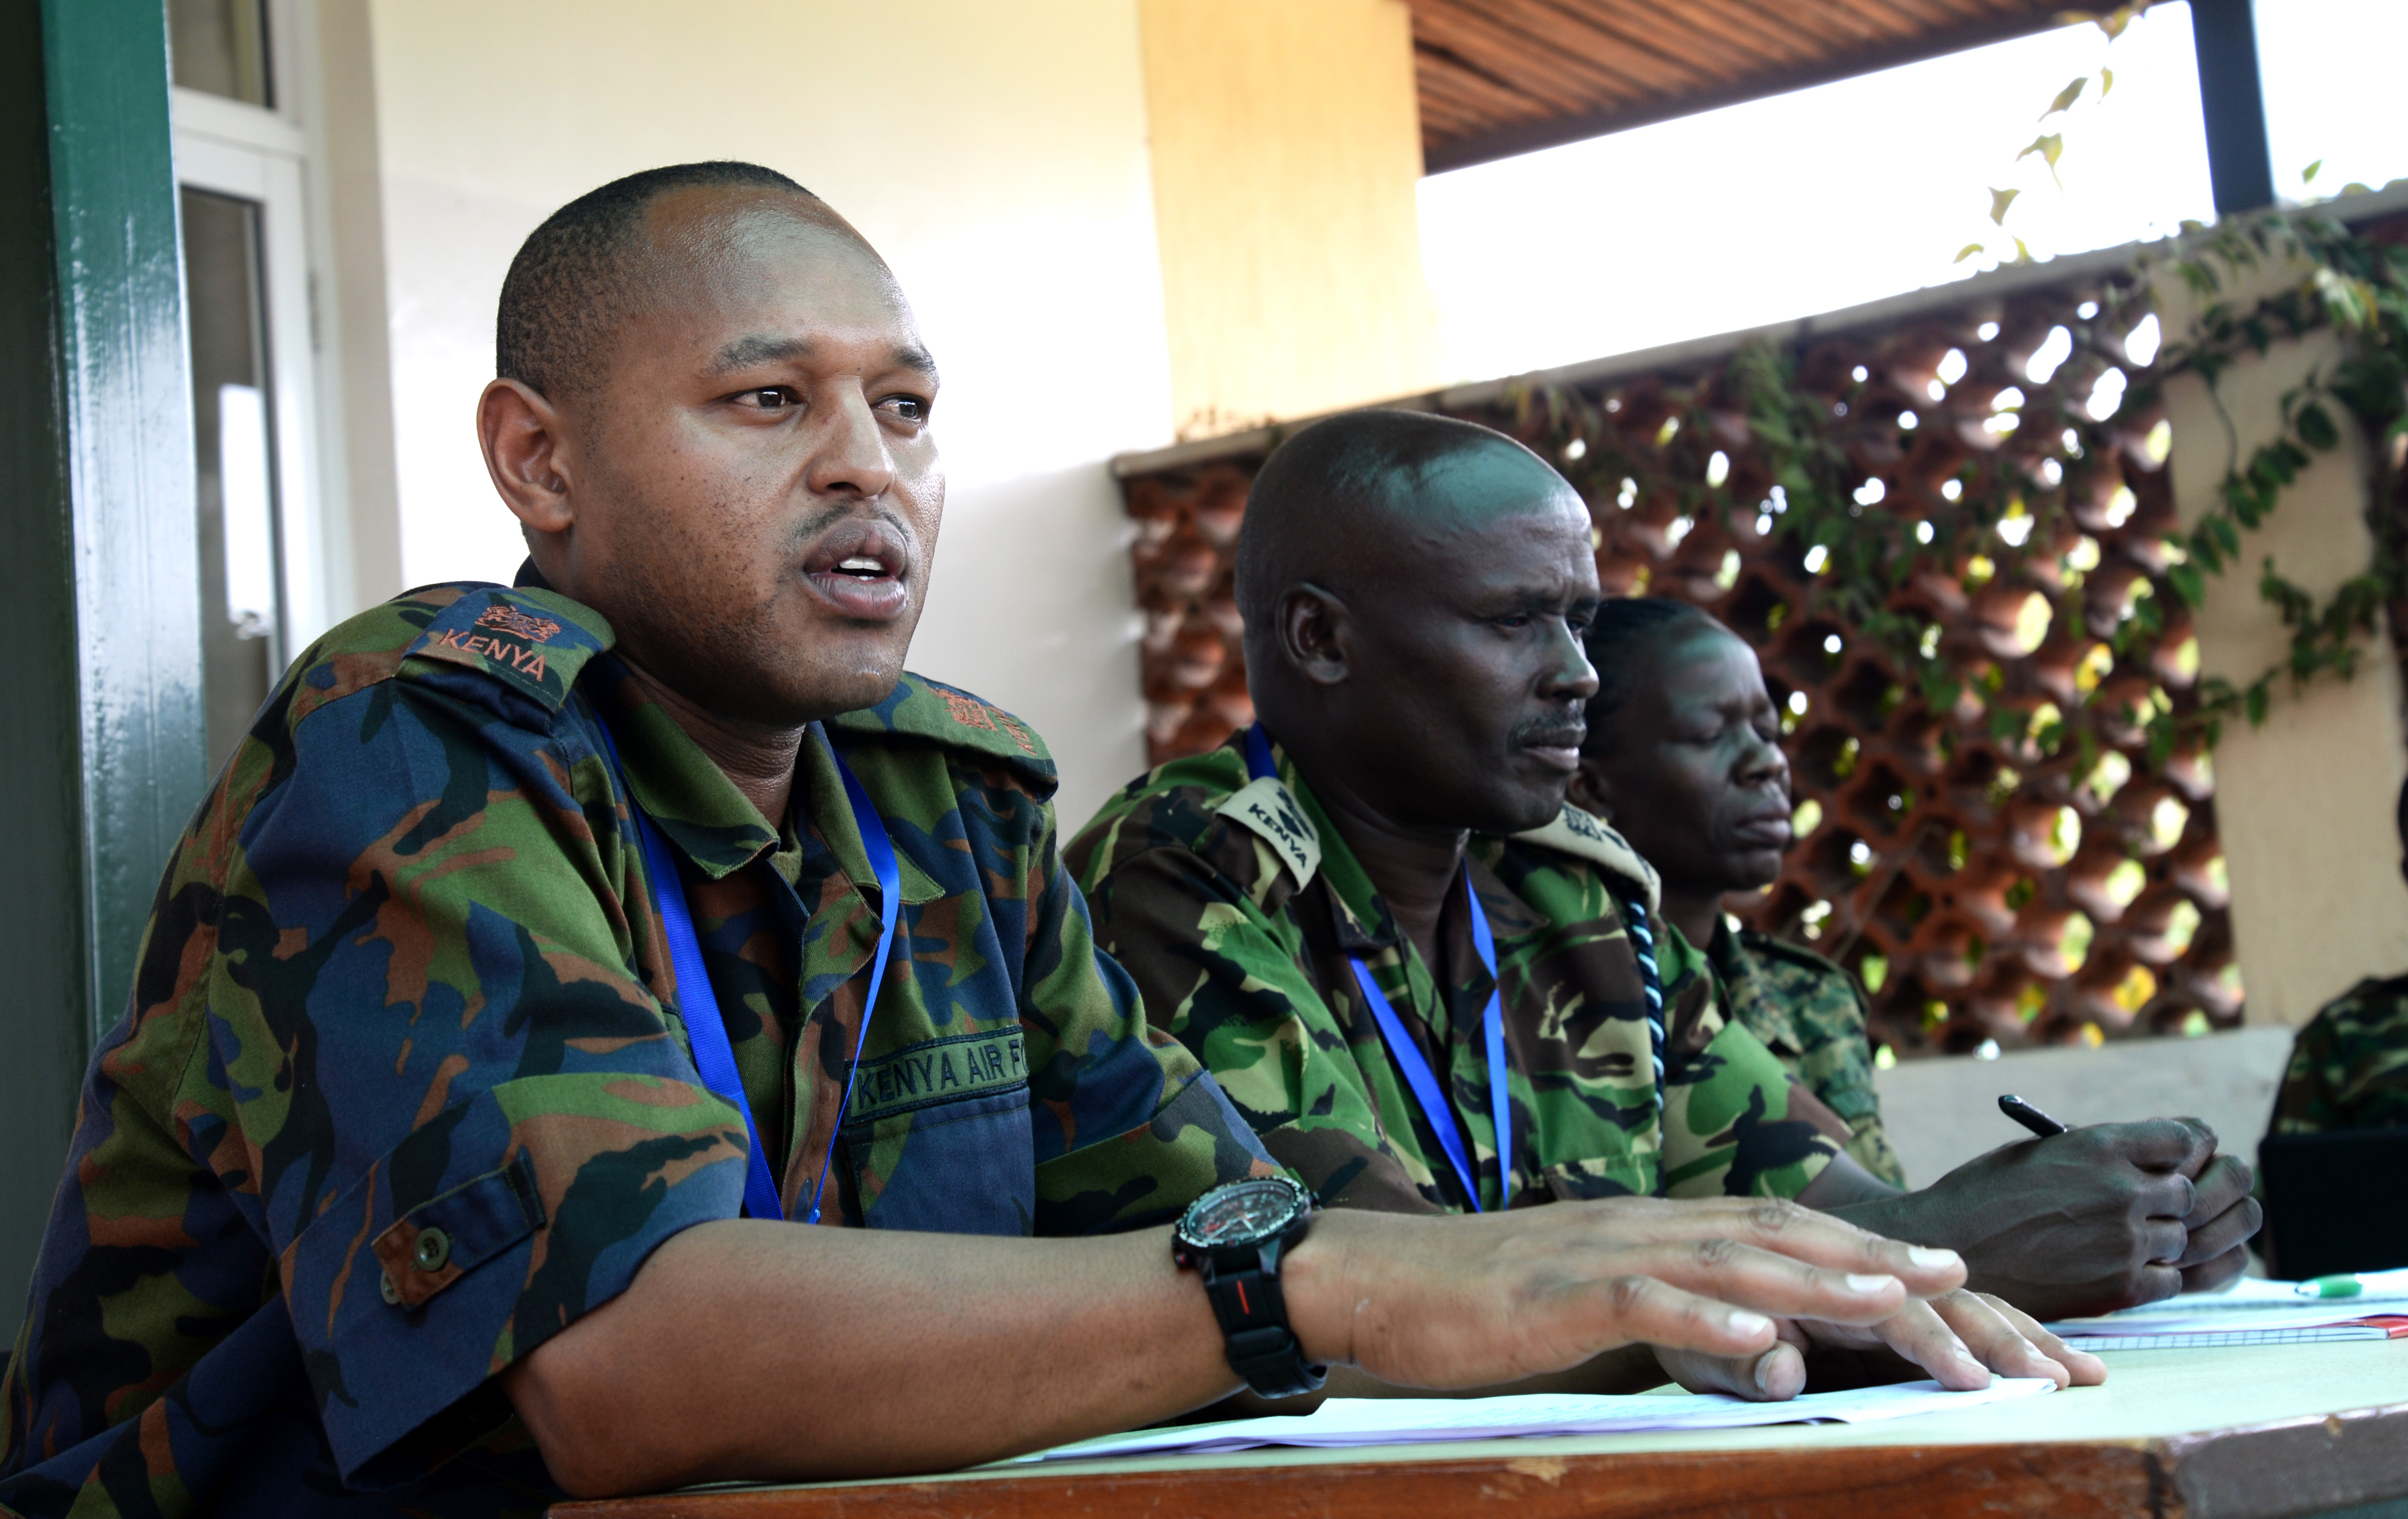 An officer from the Kenya Defence Forces speaks to media at a simulated press conference March 3, 2016, during an exercise to complete a staff officers course in Nairobi, Kenya. The press conference tested the different directorate officers' ability to answer questions accurately, confidently and without revealing sensitive military information. (U.S. Air Force photo by Staff Sgt. Kate Thornton)